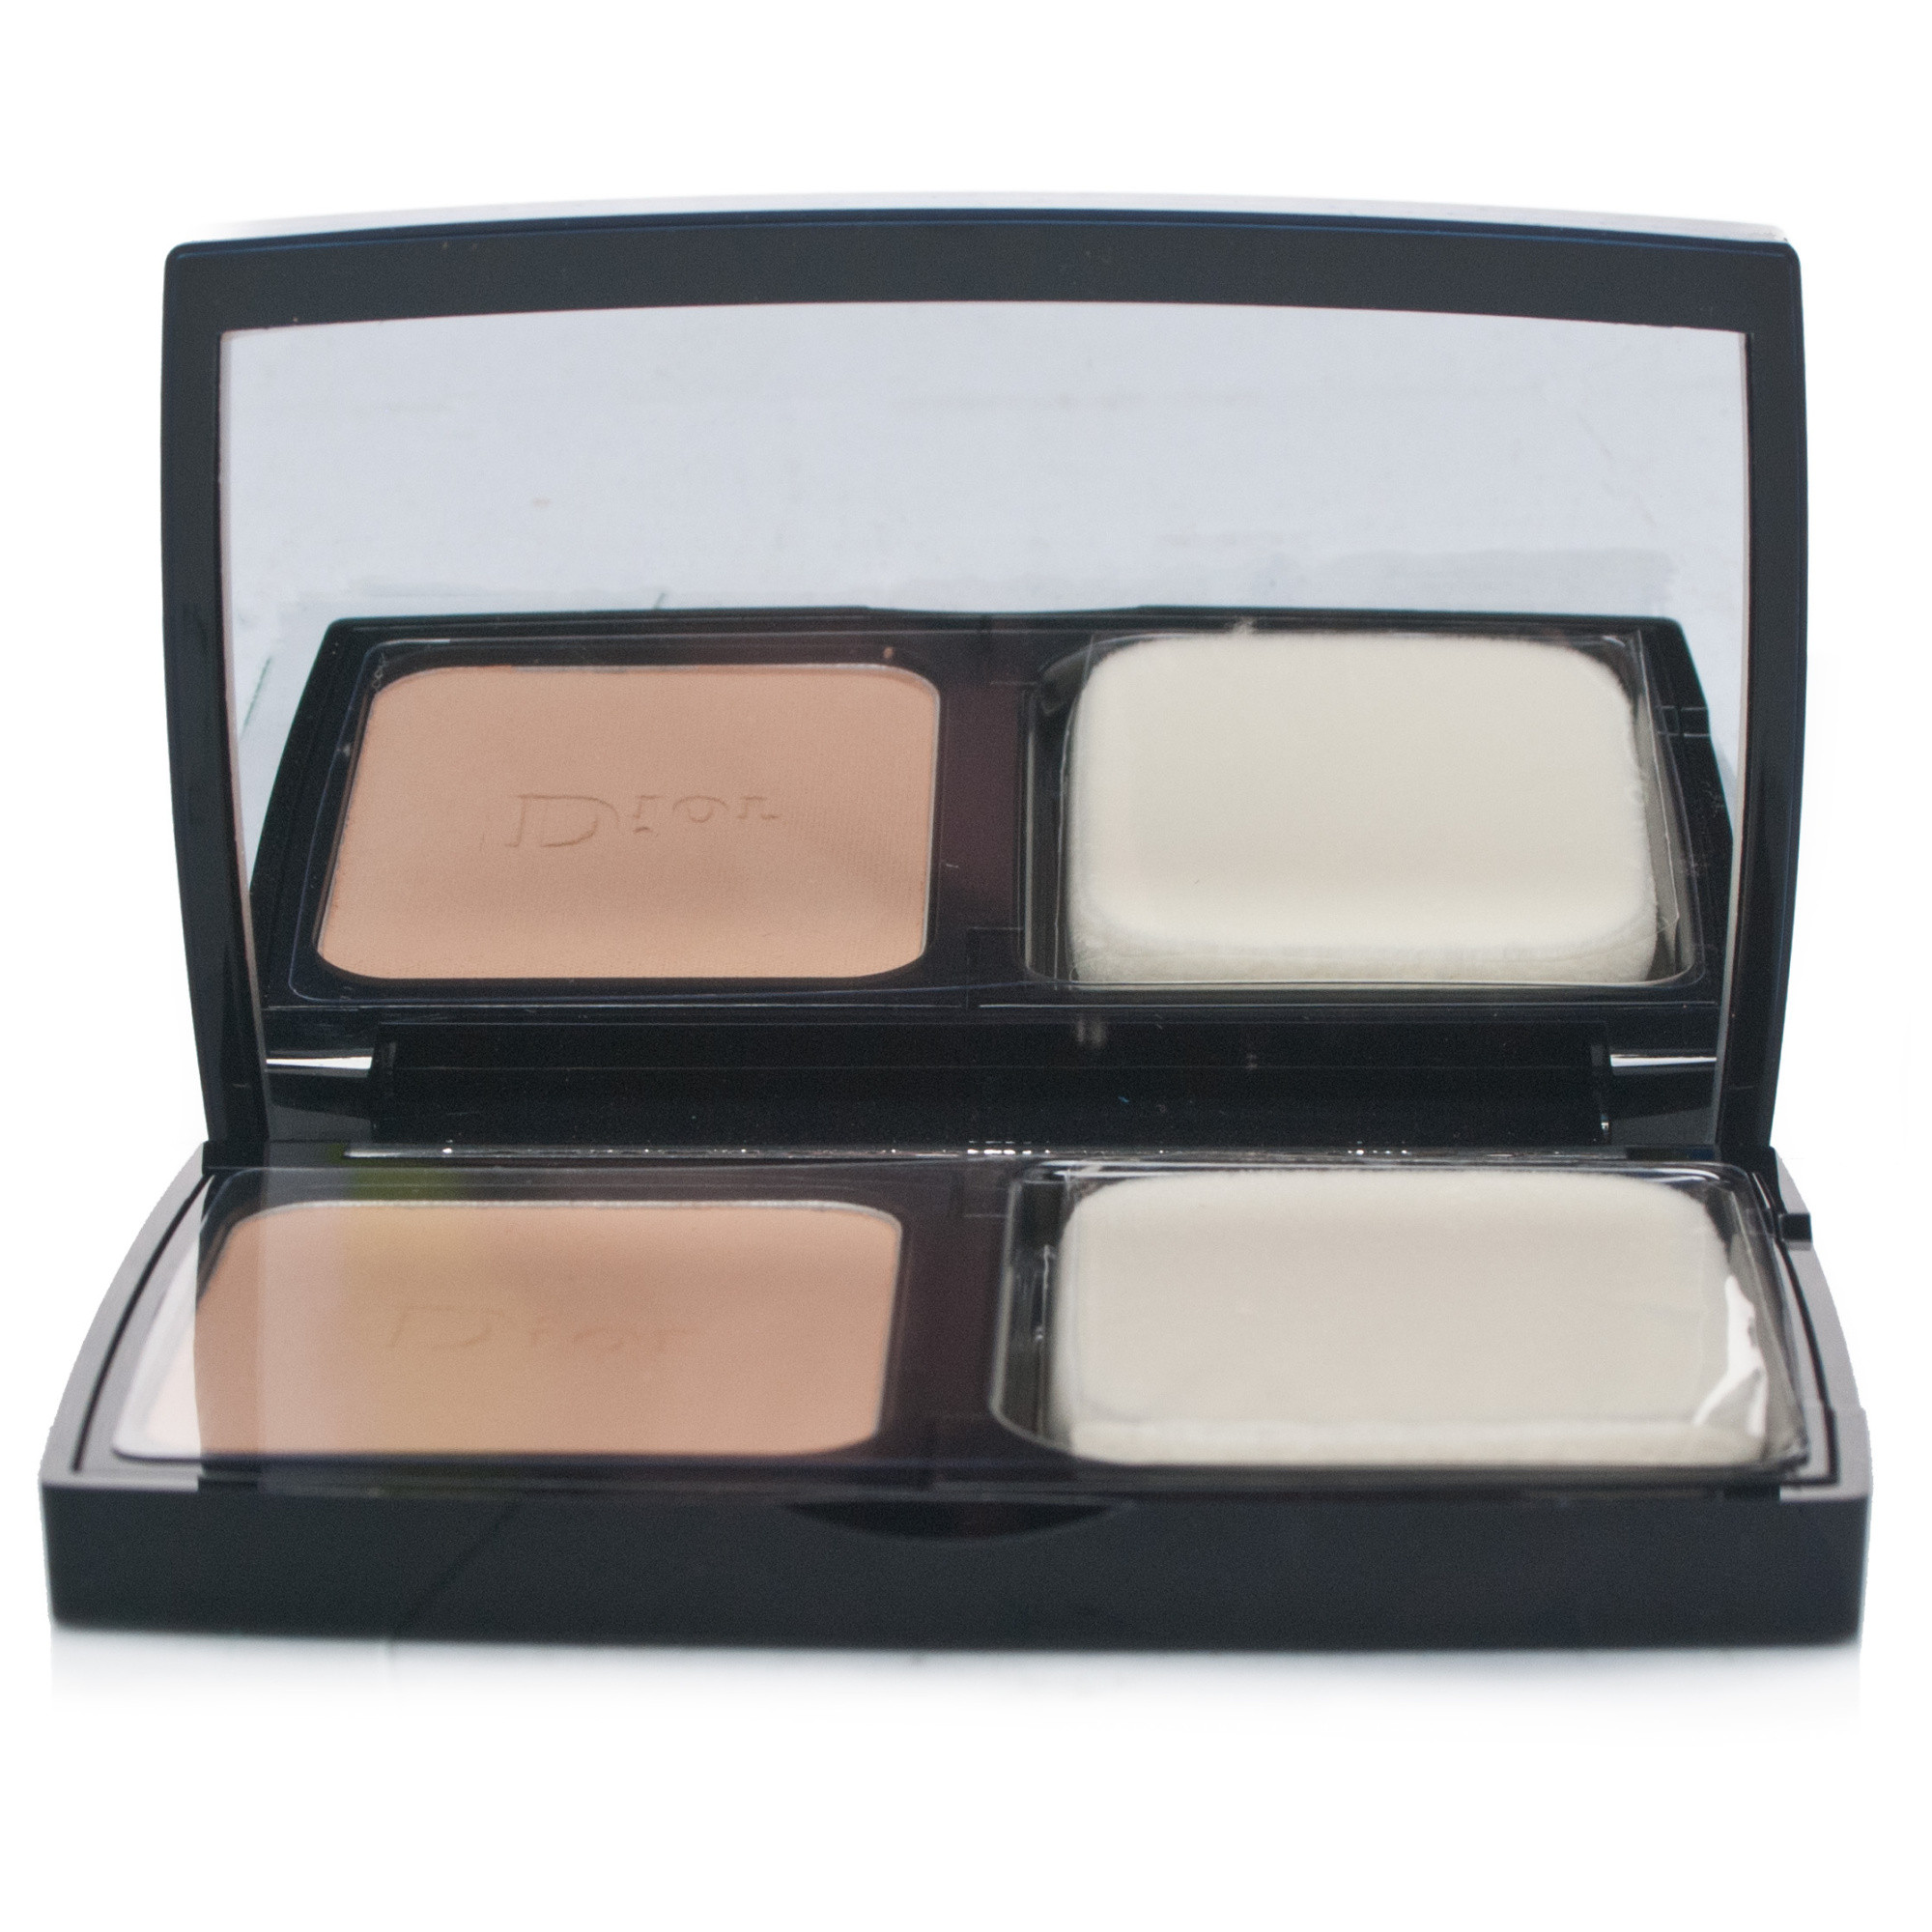 Christian Dior Diorskin Forever Compact Foundation Medium Beige